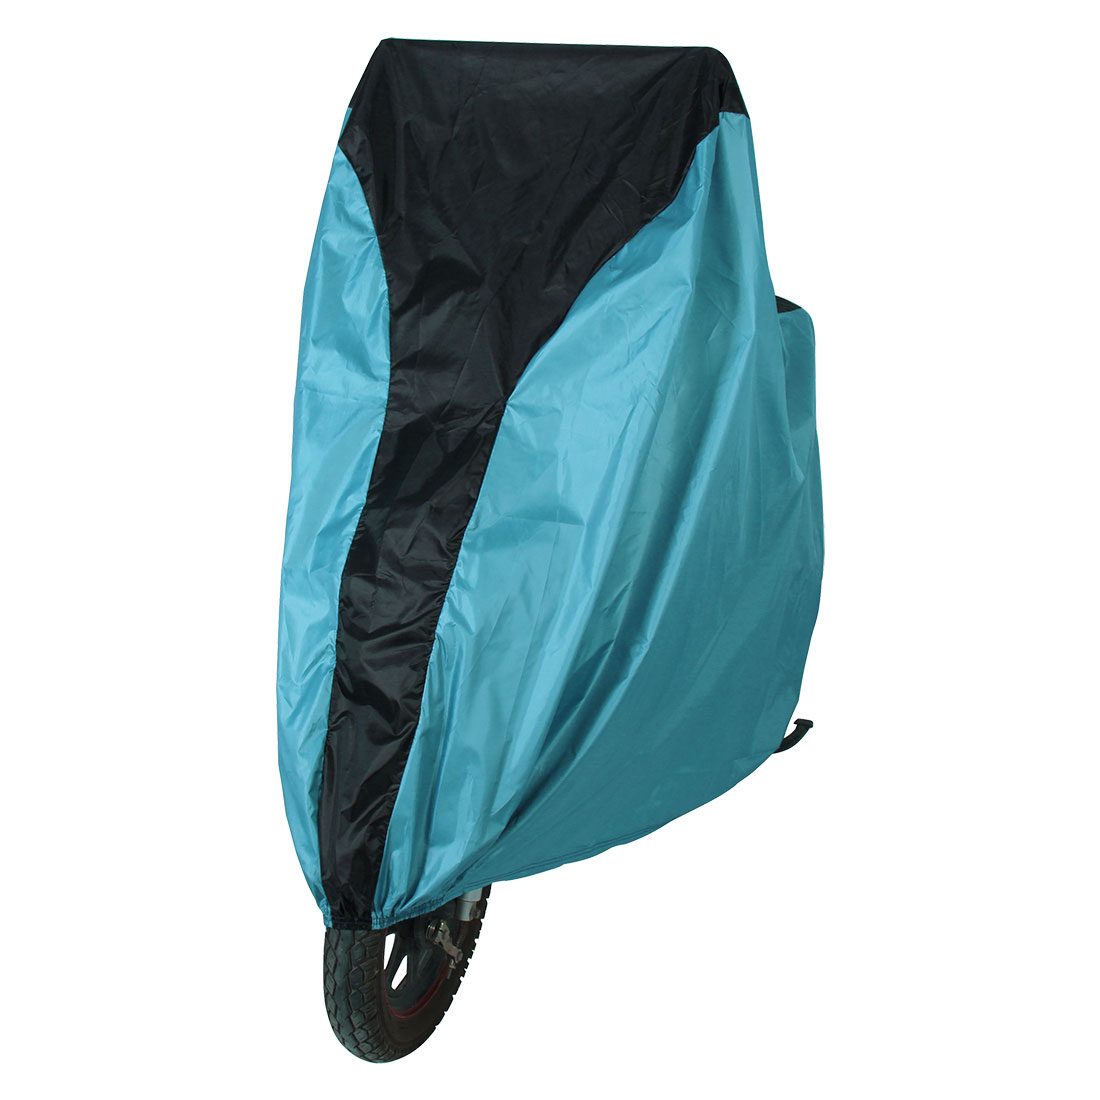 Outdoor Bike Bicycle Rain Dust Cover Water Resistant Garage Scooter Protector L Light Blue